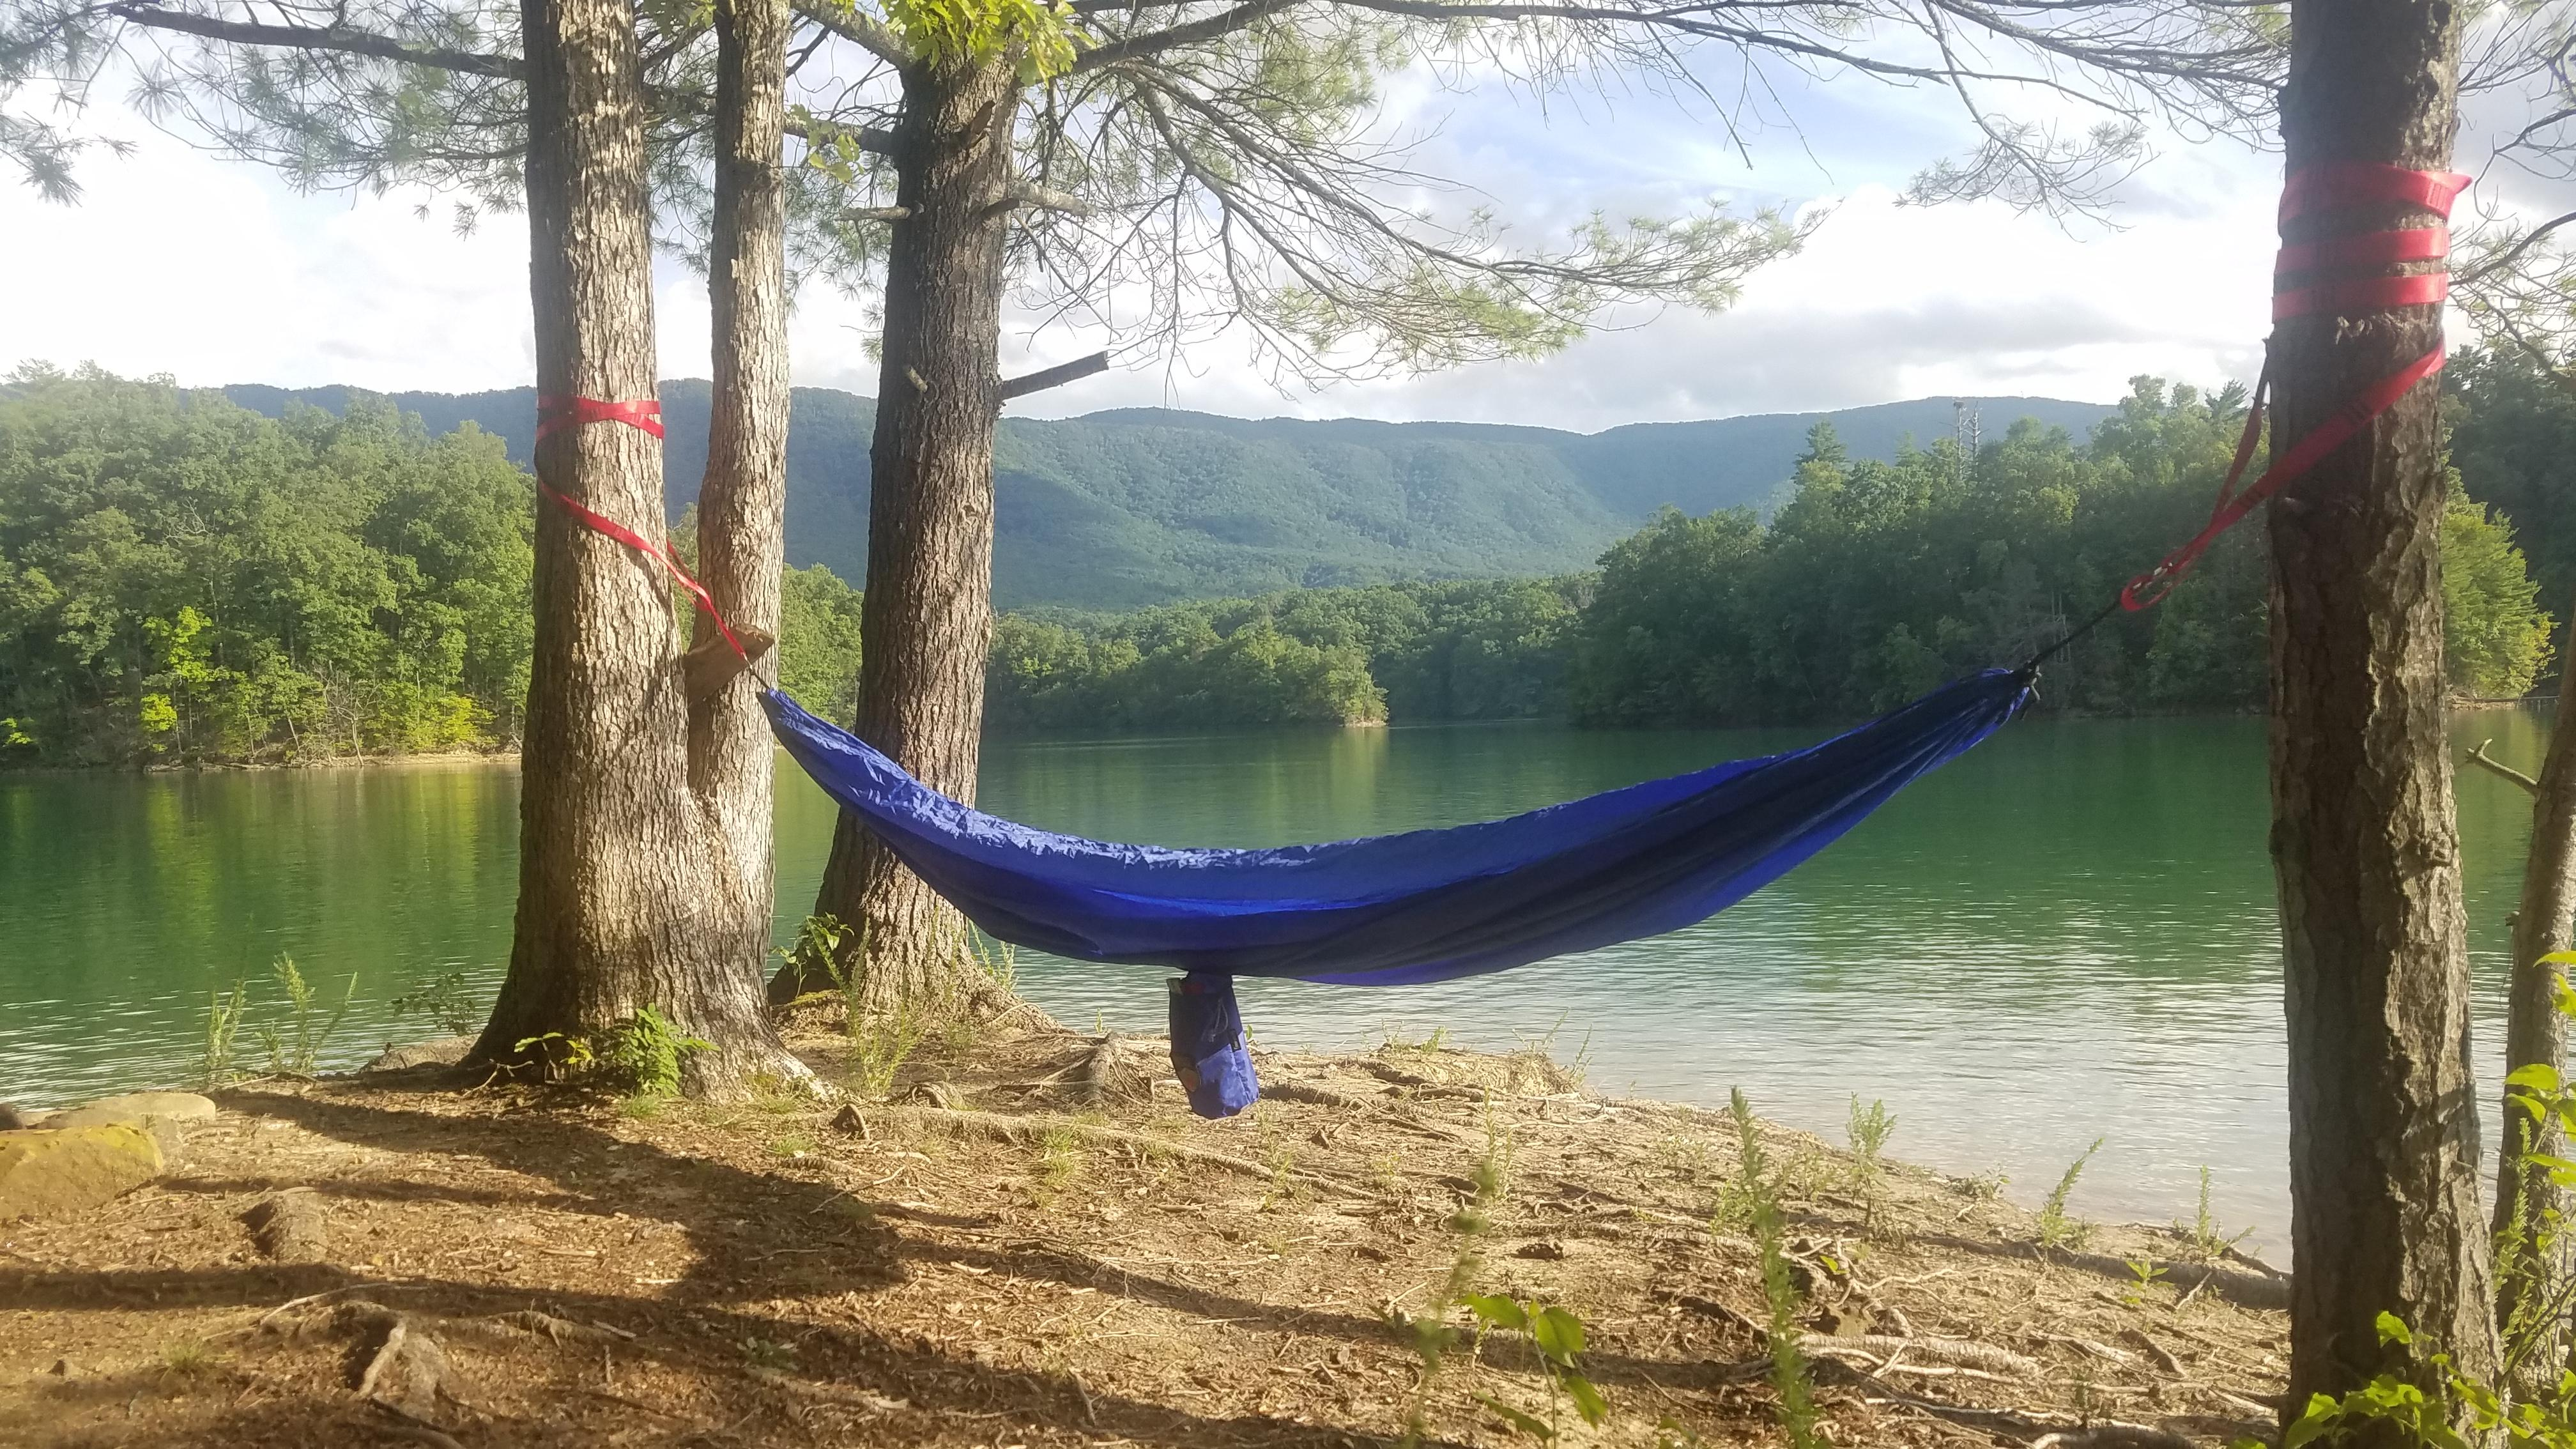 Numerous primitive campsites dotting the inlets, islands and points of Lake SoHo allow for overnight stopovers in the presence of stunning views.